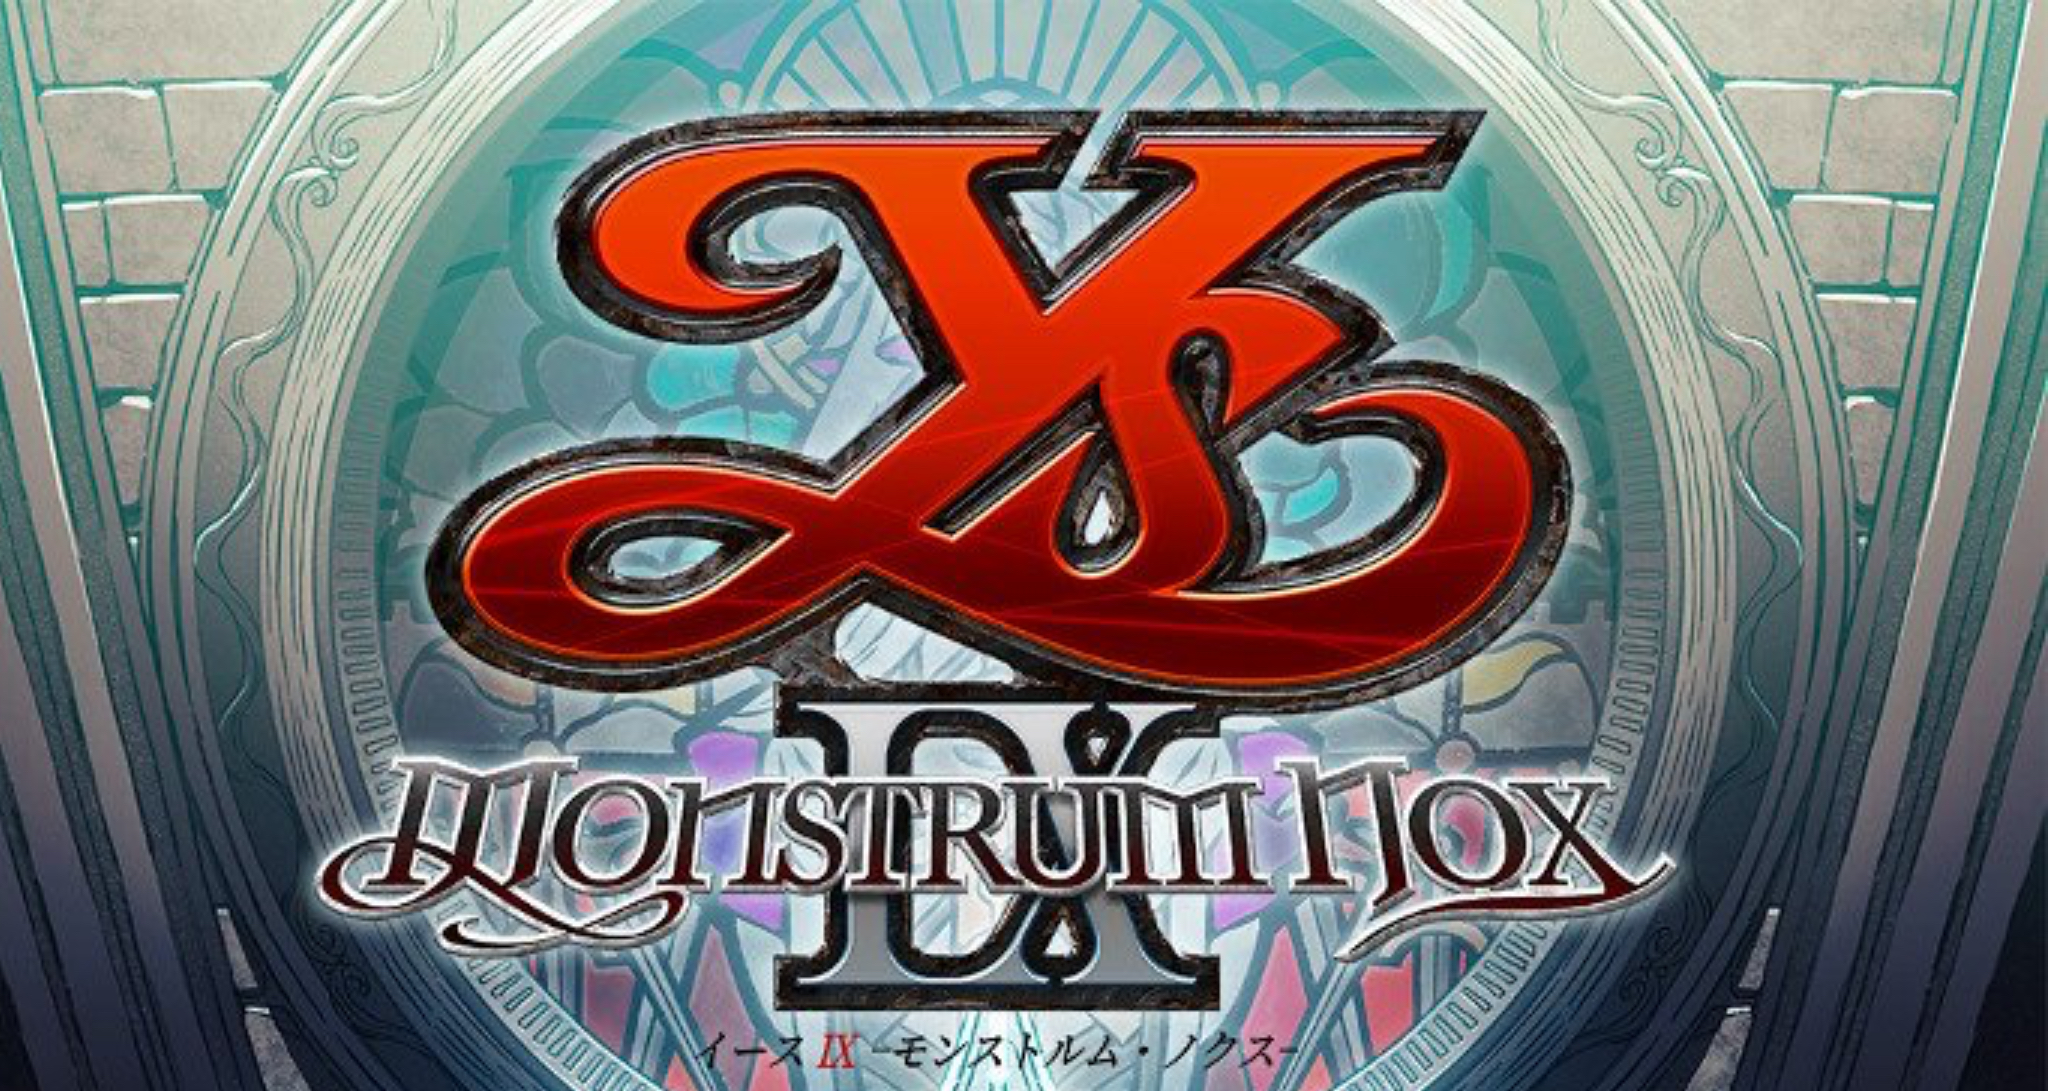 Arcades In Tacoma >> Updated: Ys IX: Monstrum Nox announced for PS4 release in Japan next year - GodisaGeek.com